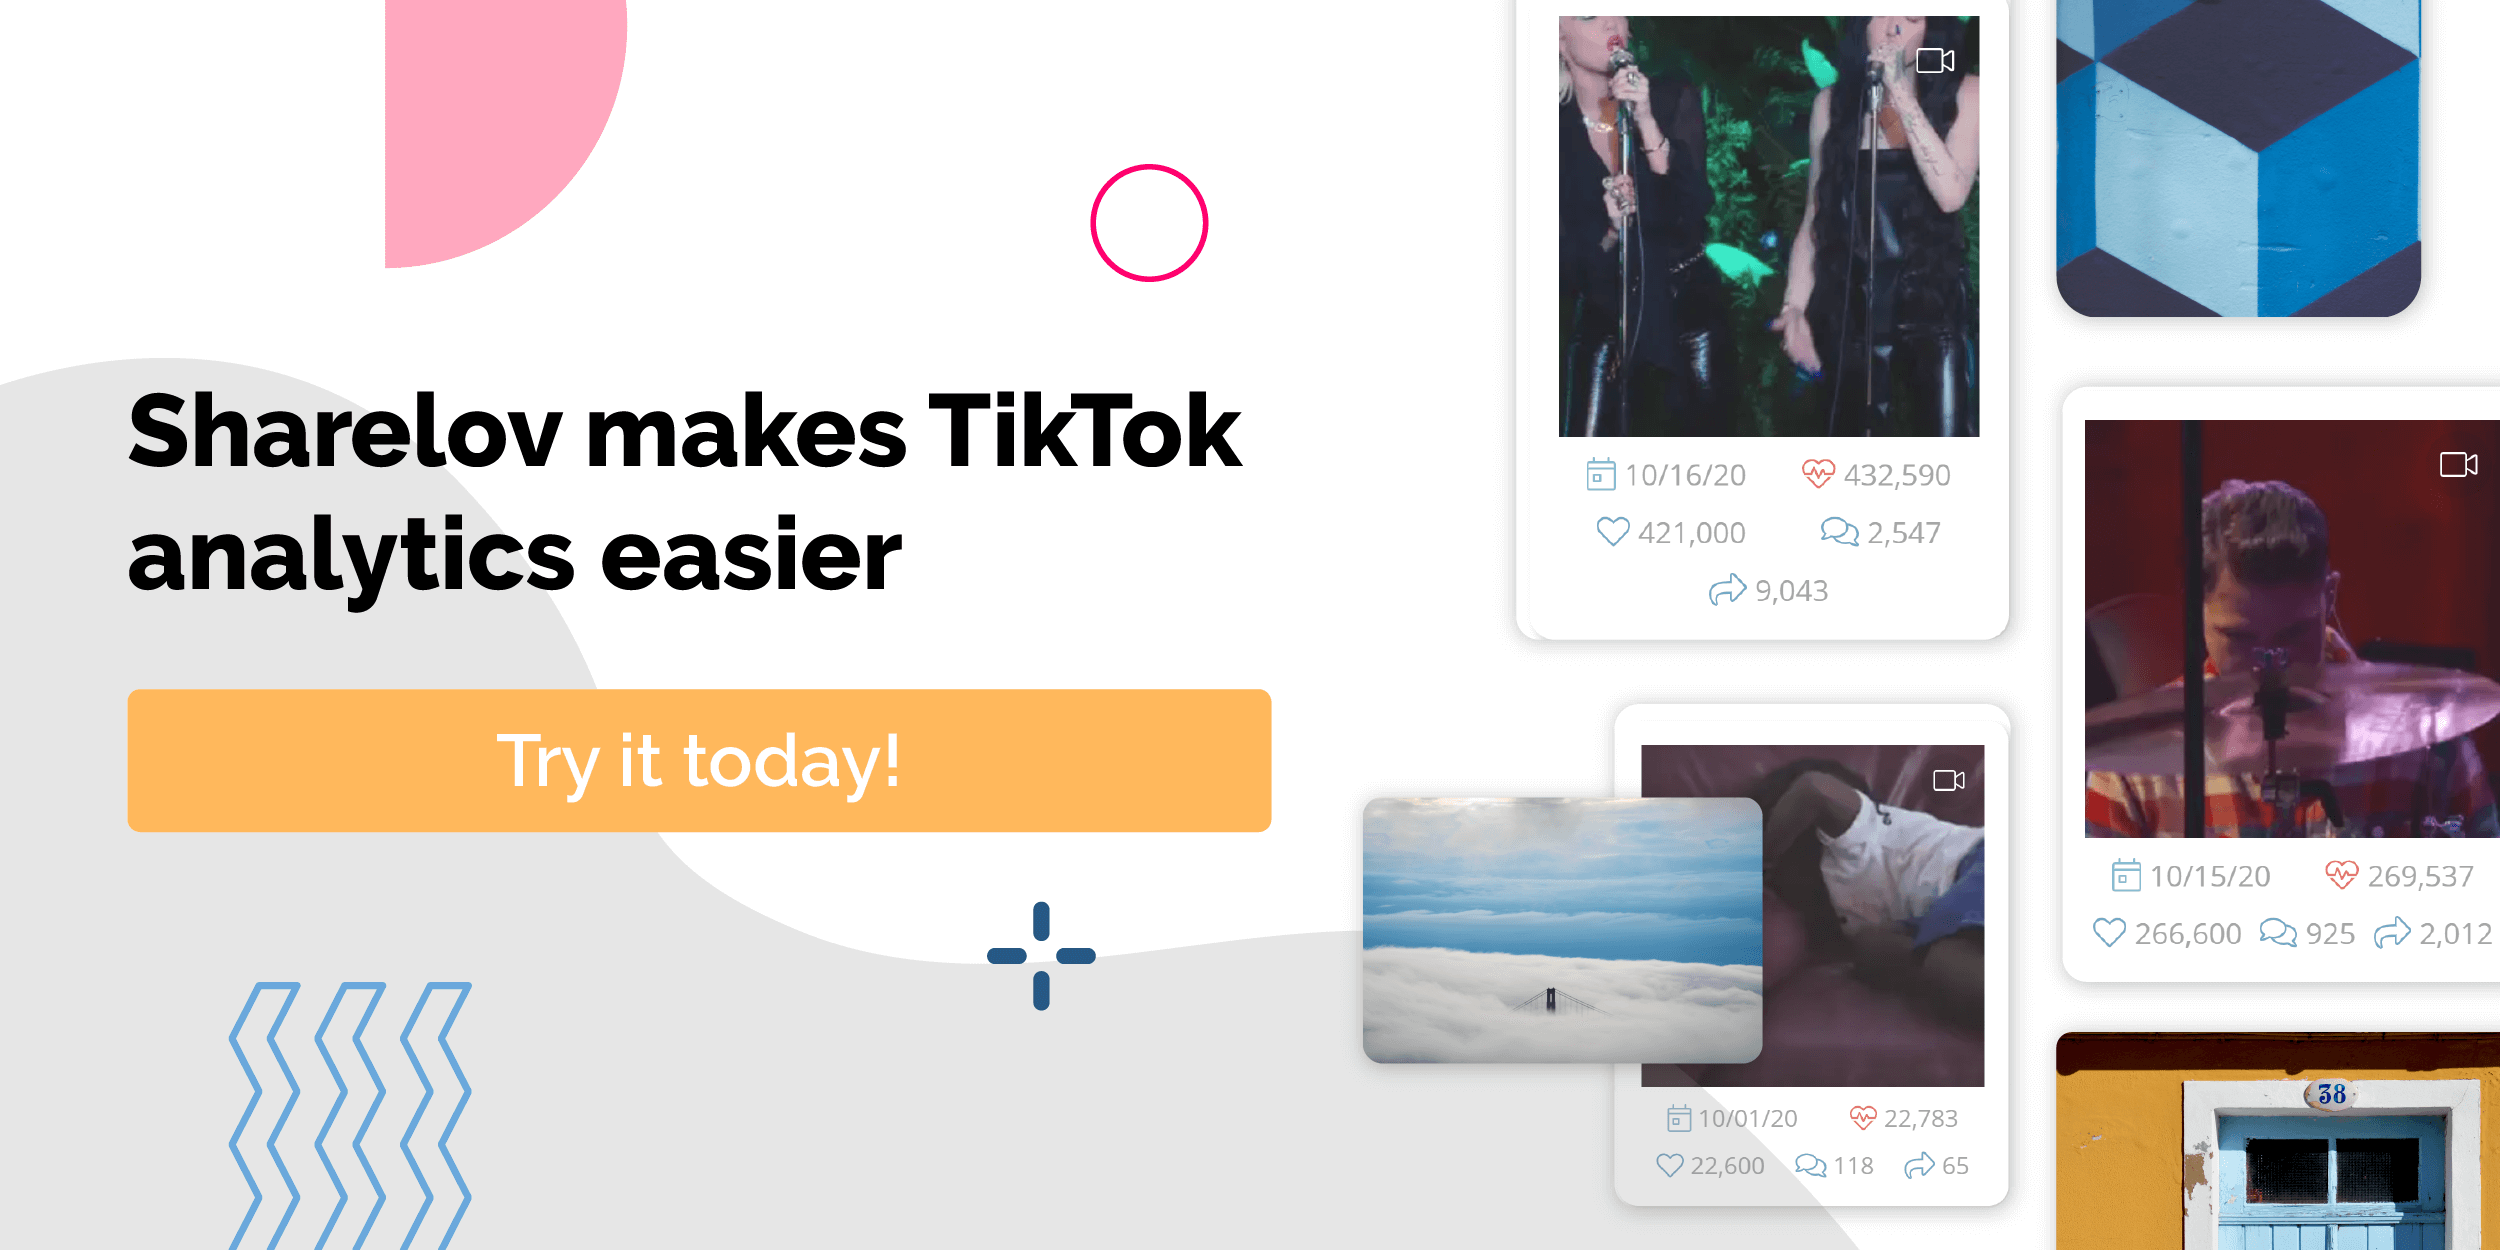 Sharelov makes TikTok analytics easier